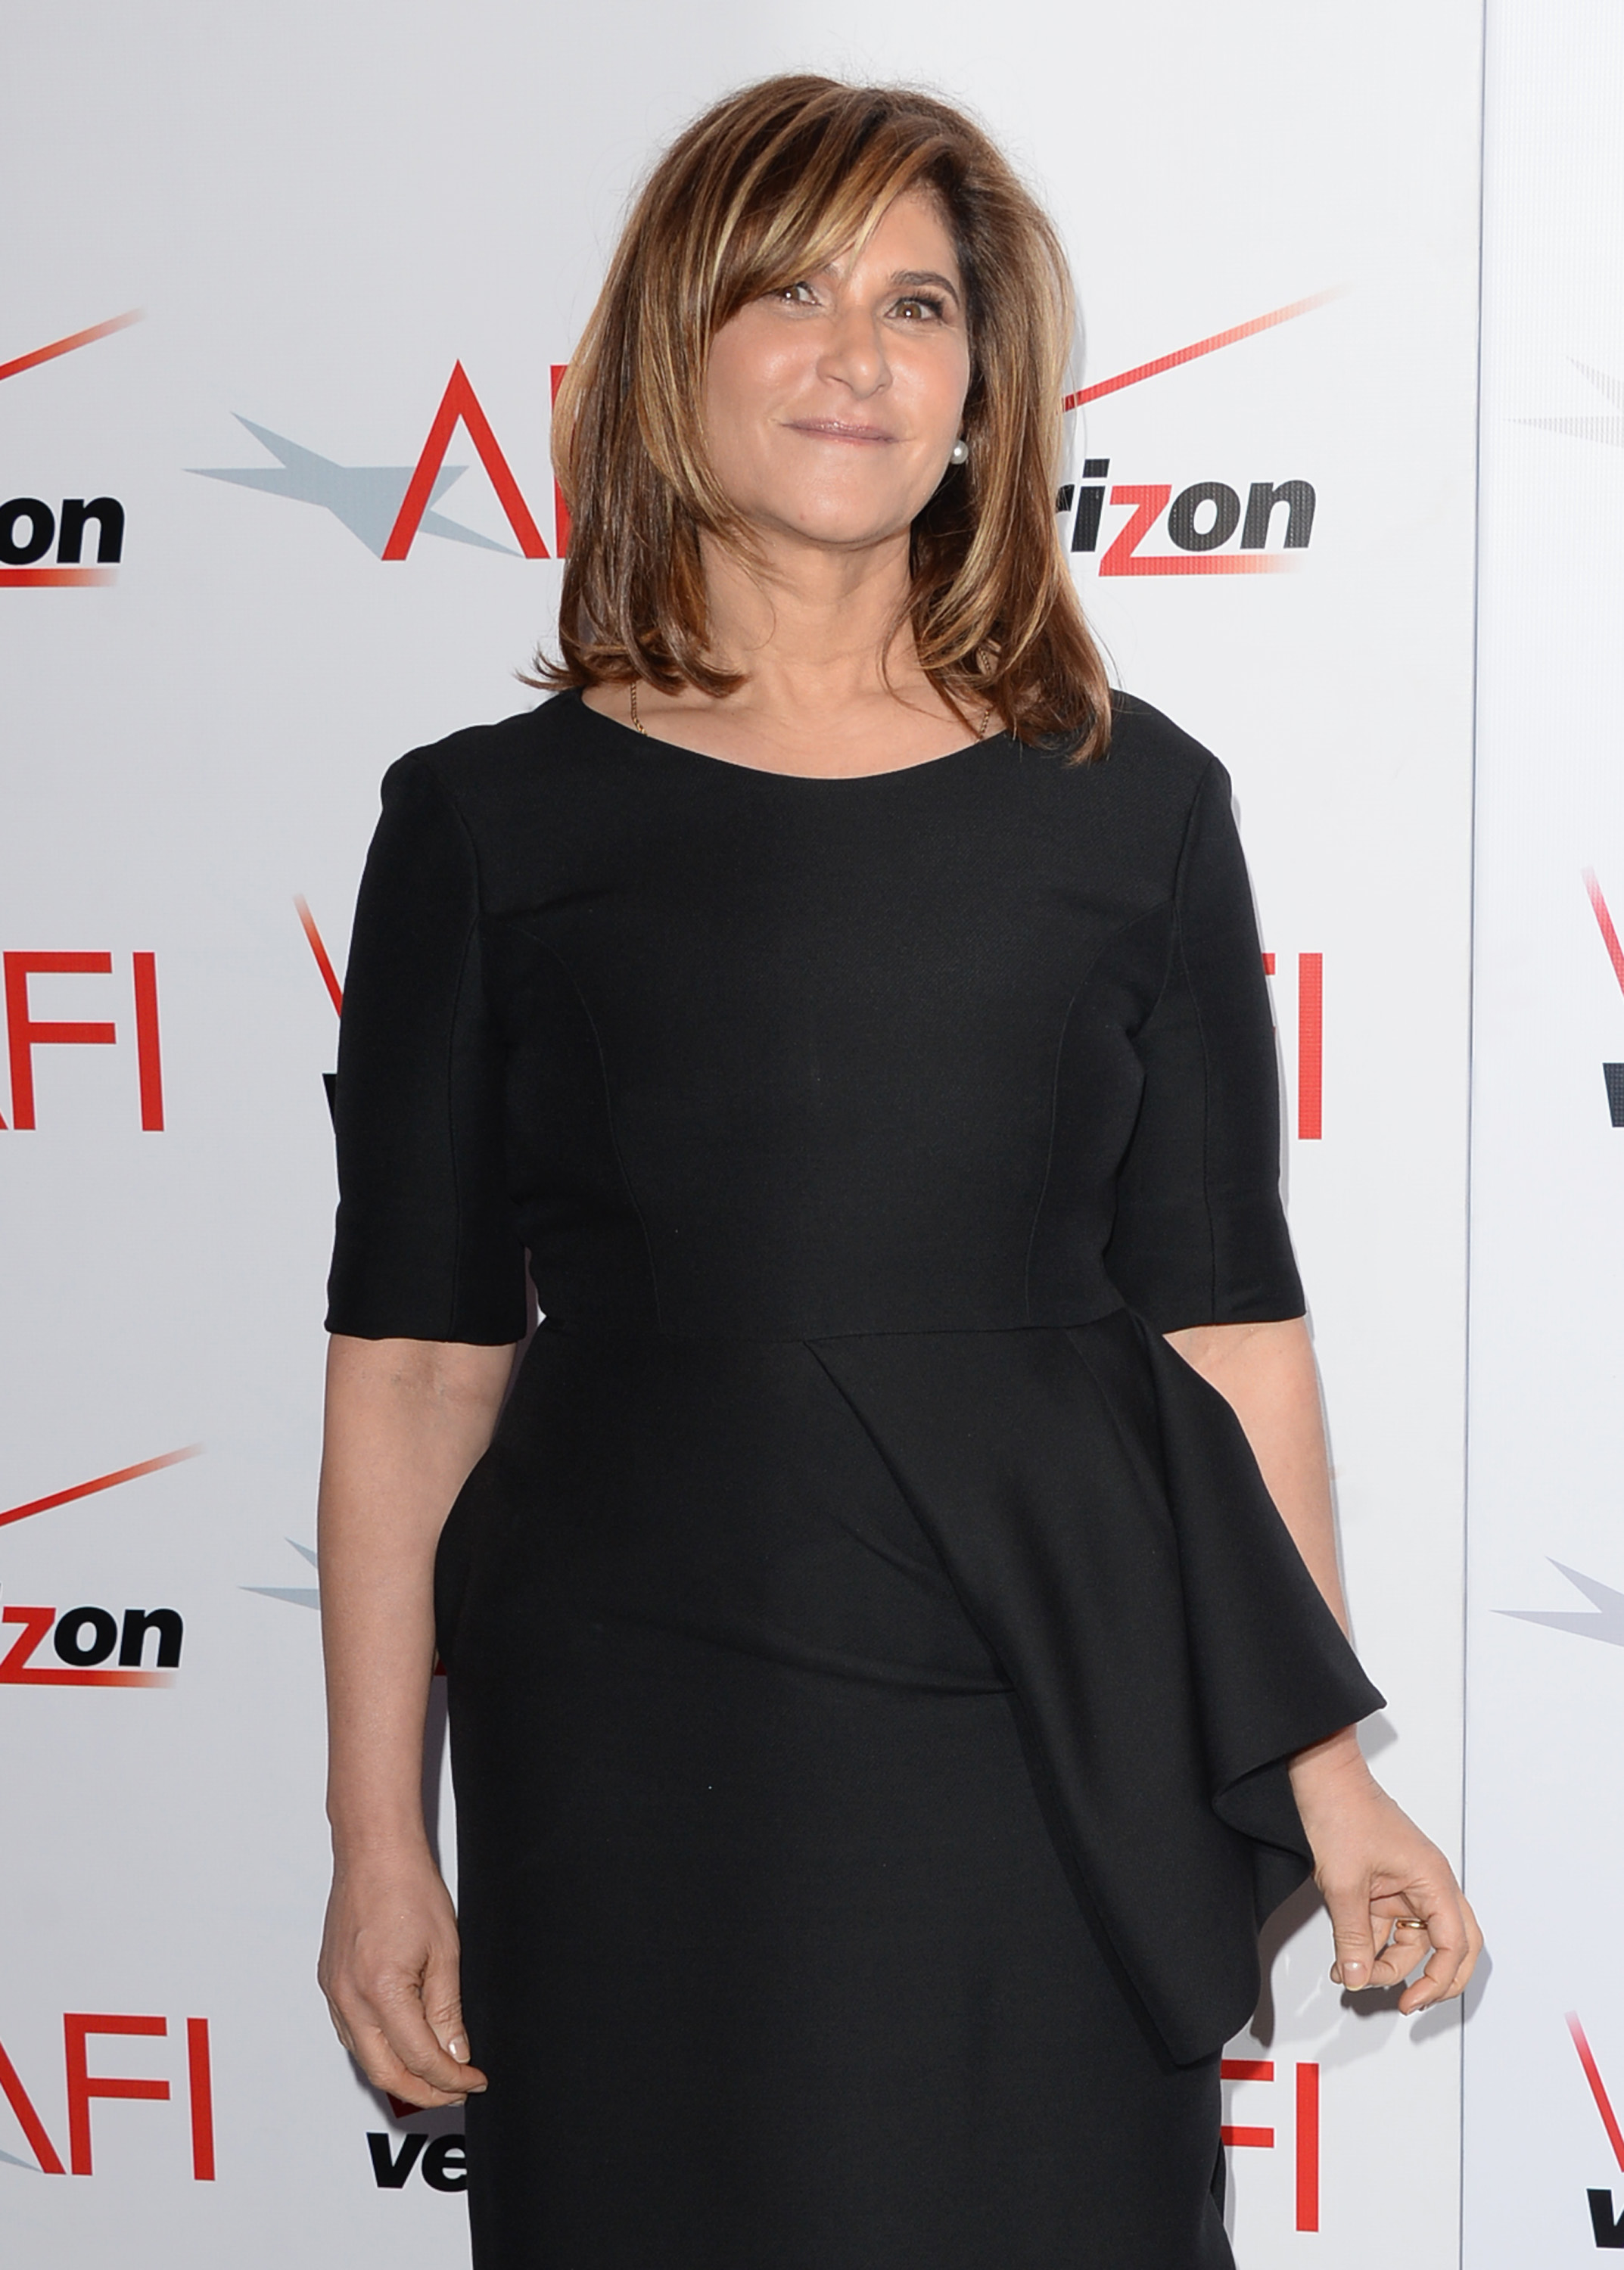 Amy Pascal attends the 14th annual AFI Awards Luncheon at the Four Seasons Hotel Beverly Hills on Jan. 10, 2014 in Beverly Hills.